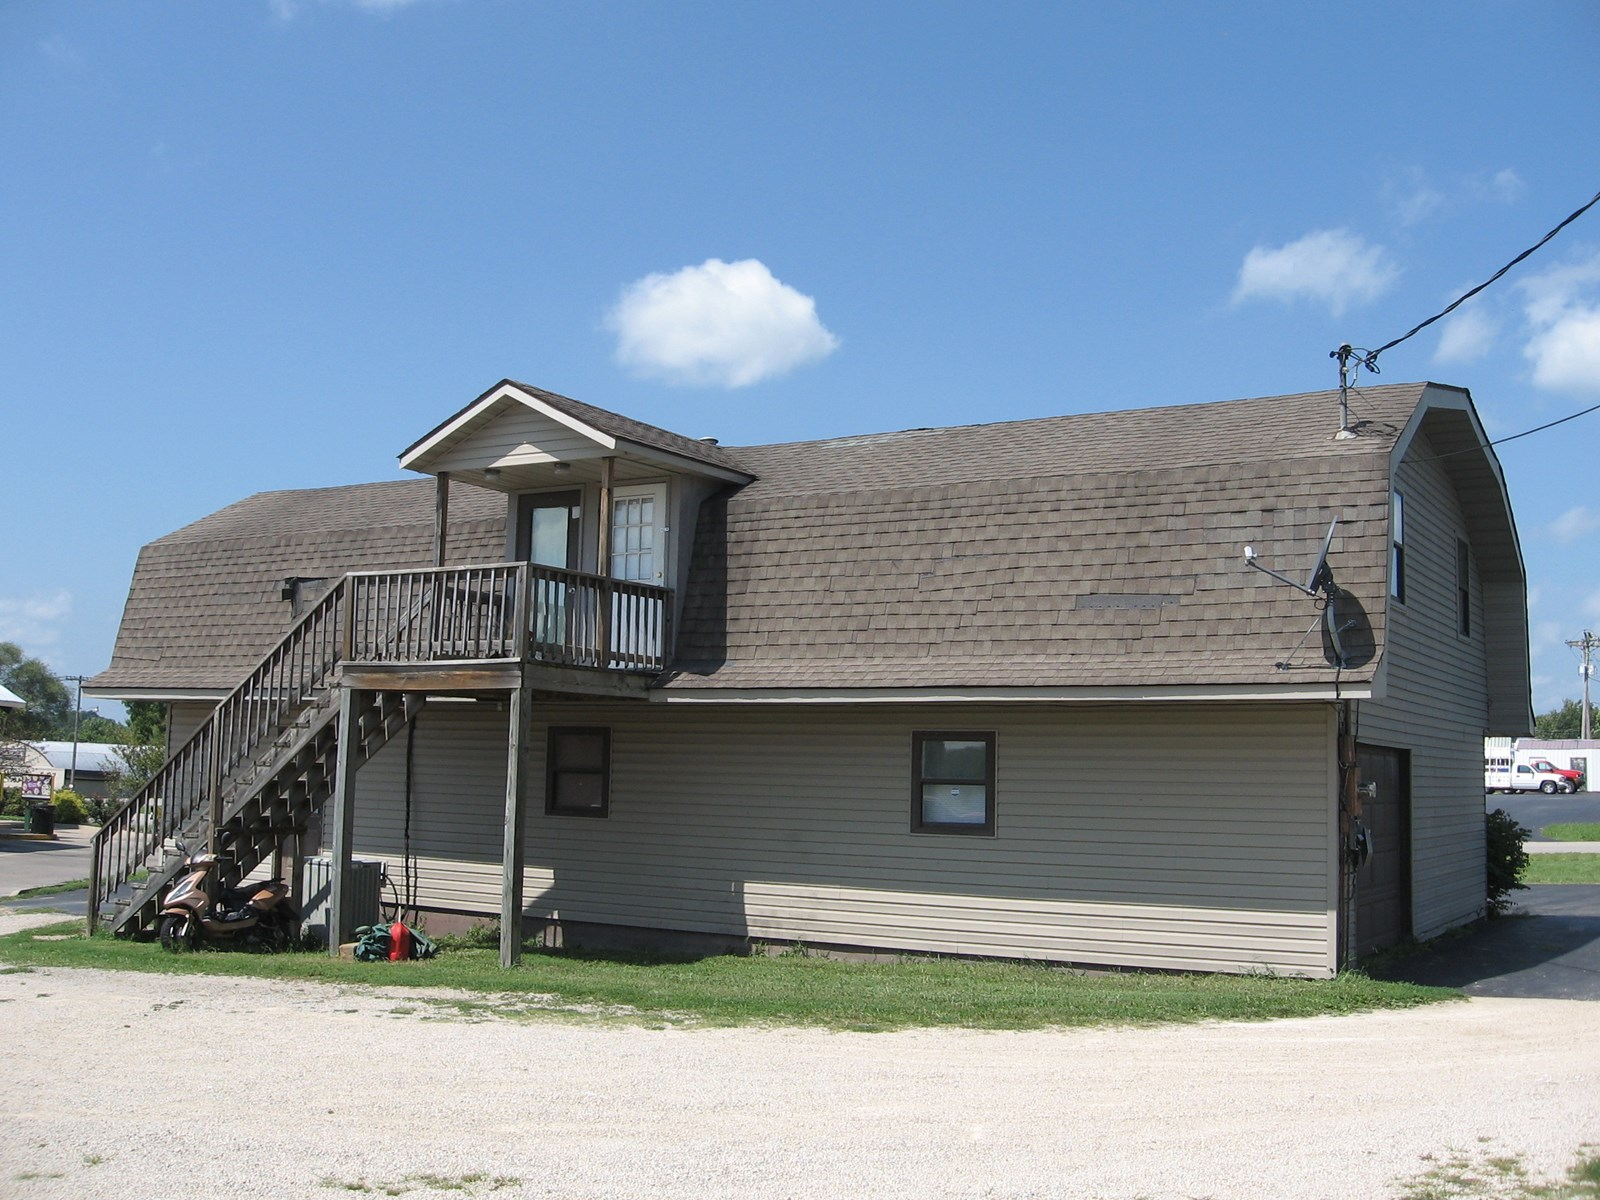 Multi-Unit Apartment Building For Sale in Fredericktown, MO